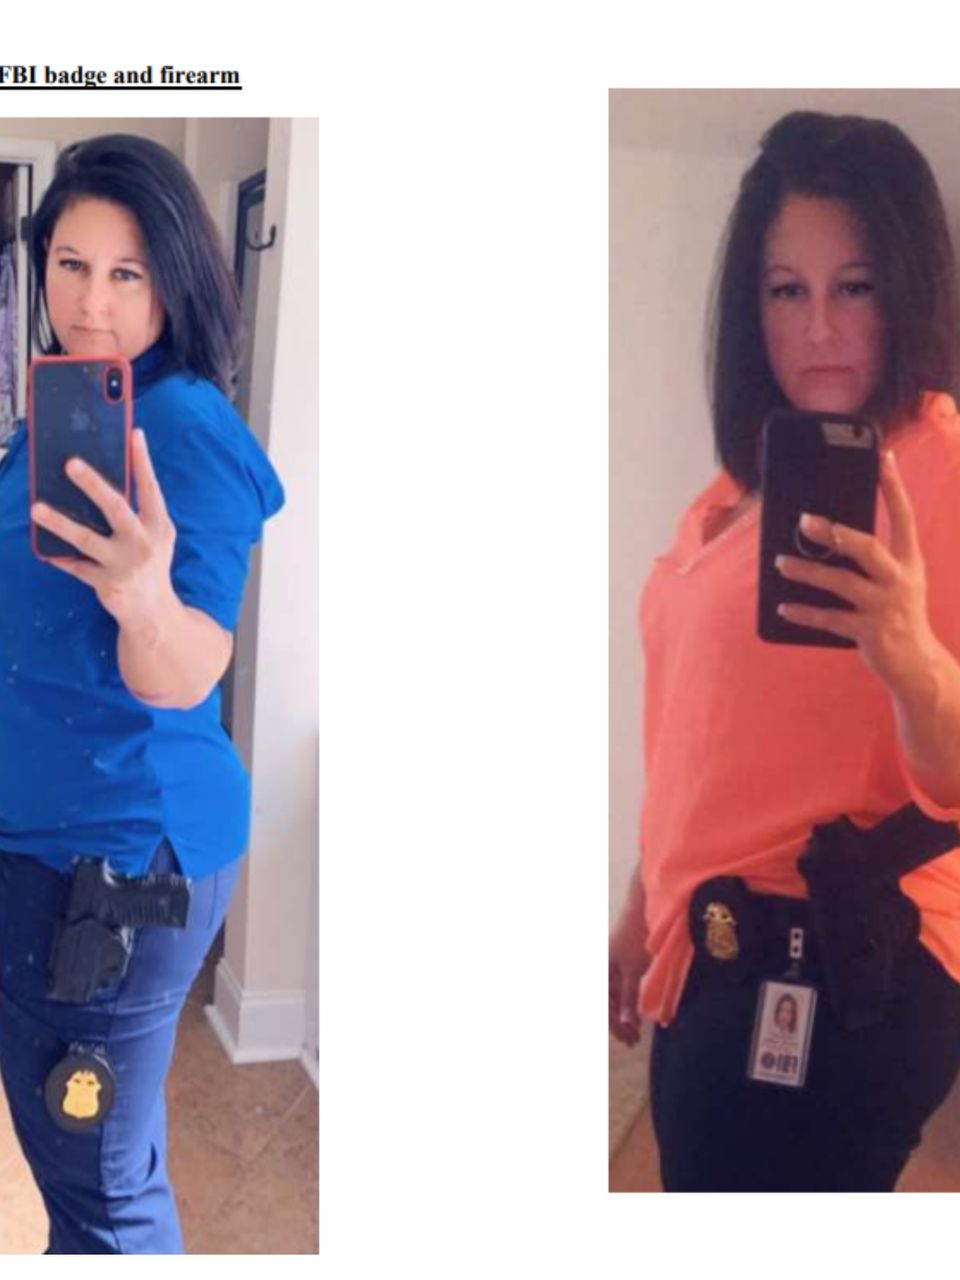 Agent Fake woman gets 3 years for posing as fbi agent on dating